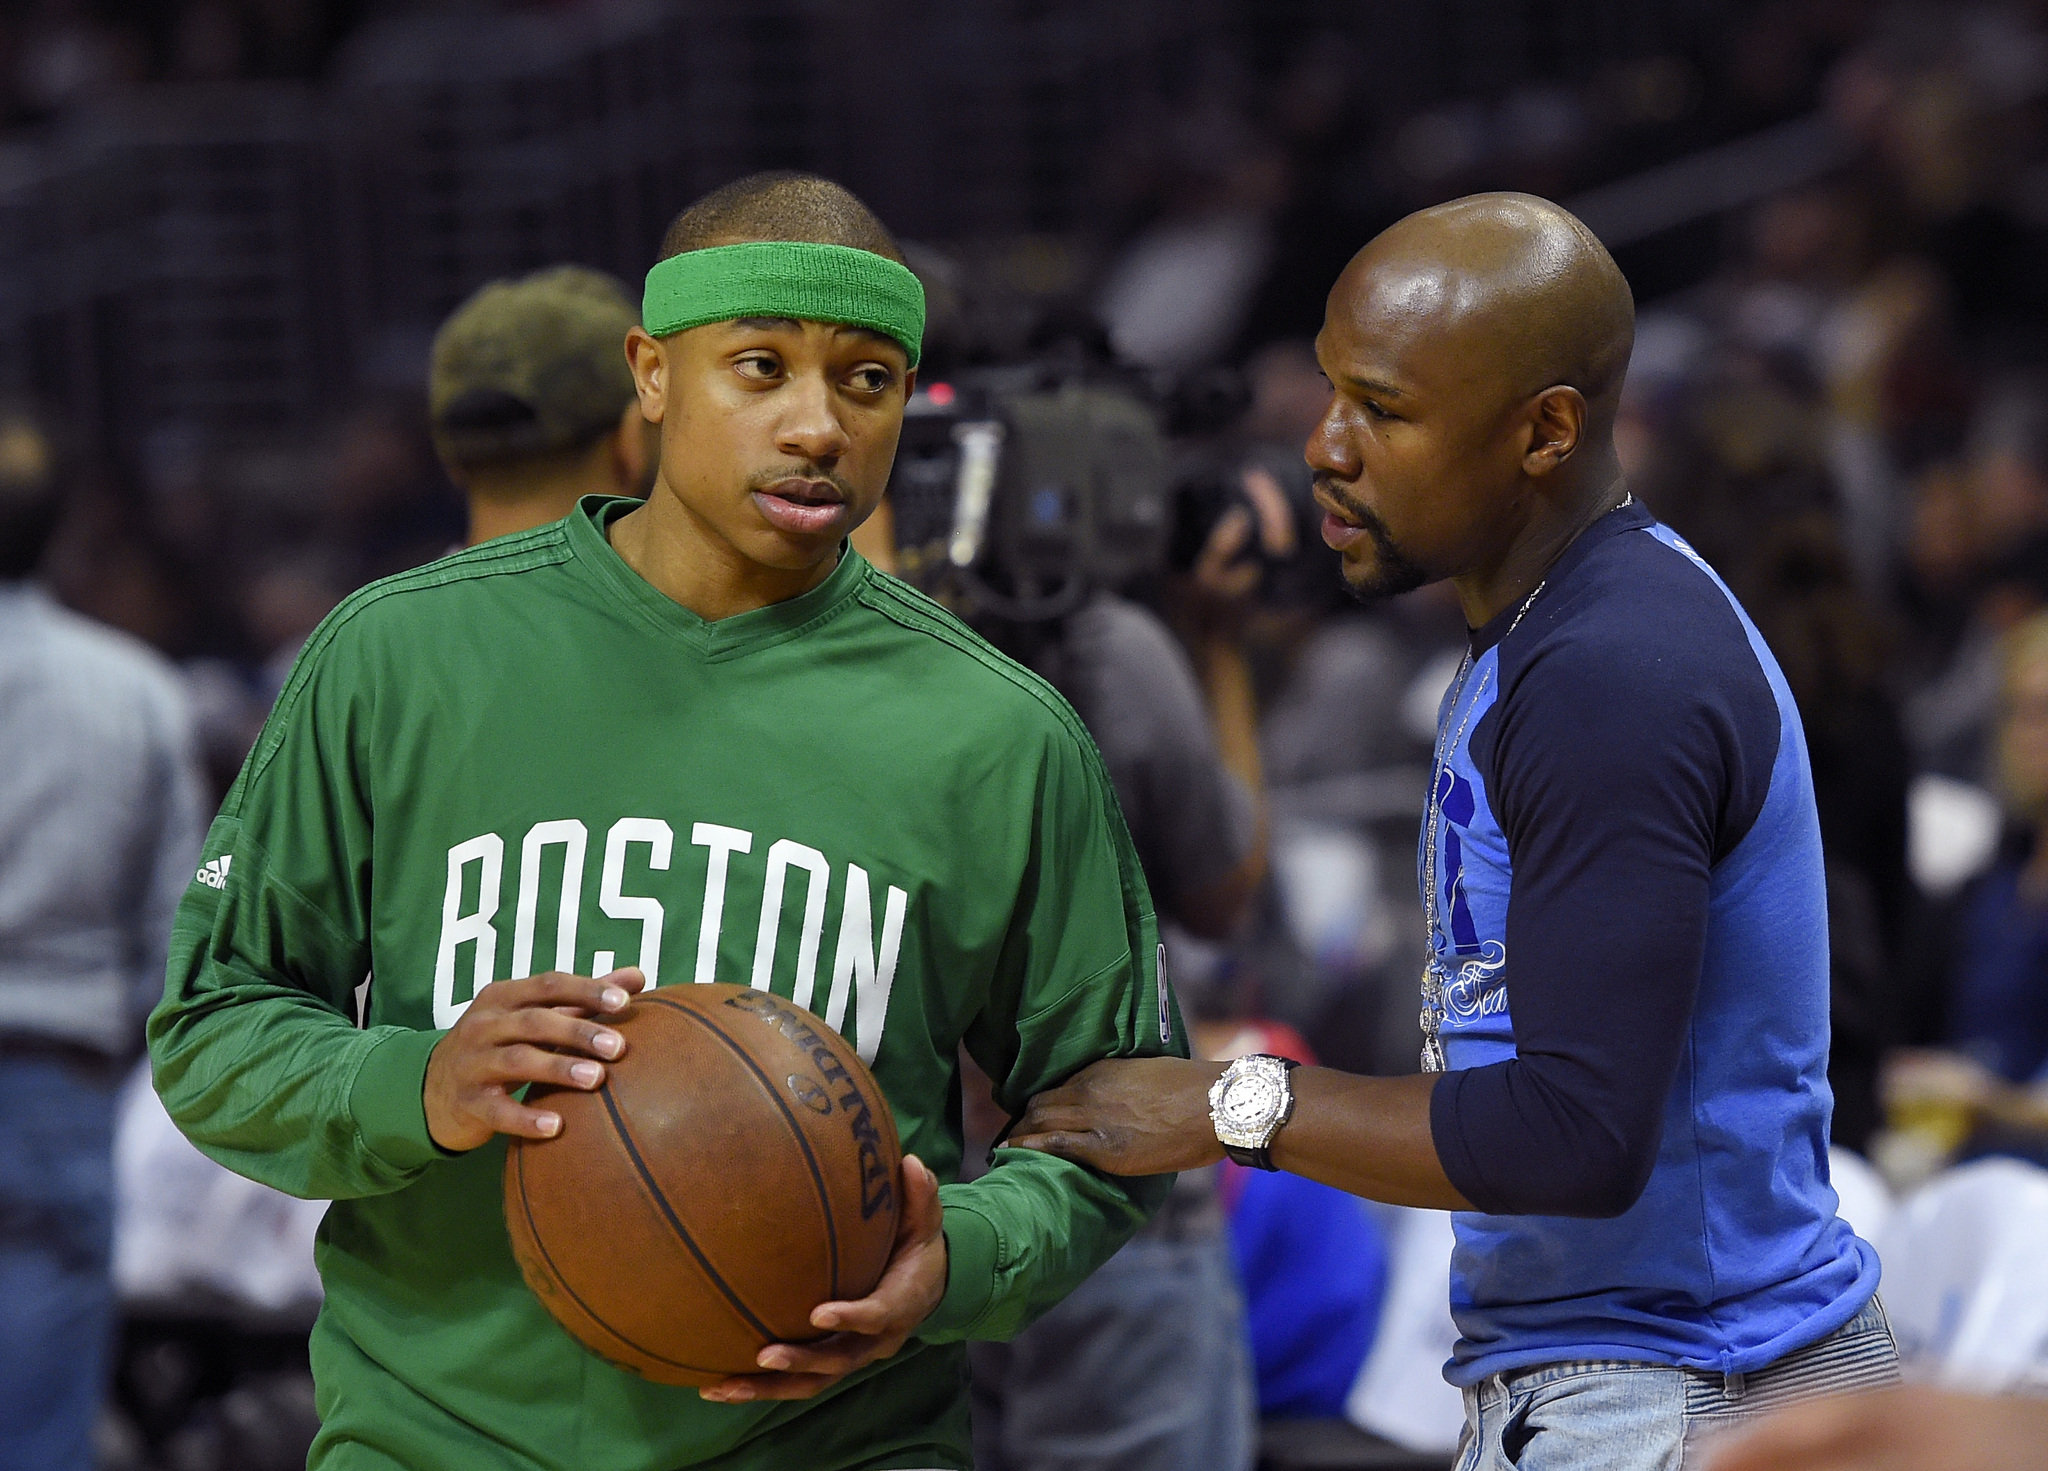 https://i2.wp.com/media.masslive.com/celtics_impact/photo/isaiah-thomas-floyd-mayweather-888b0cf7cf5a101e.jpg